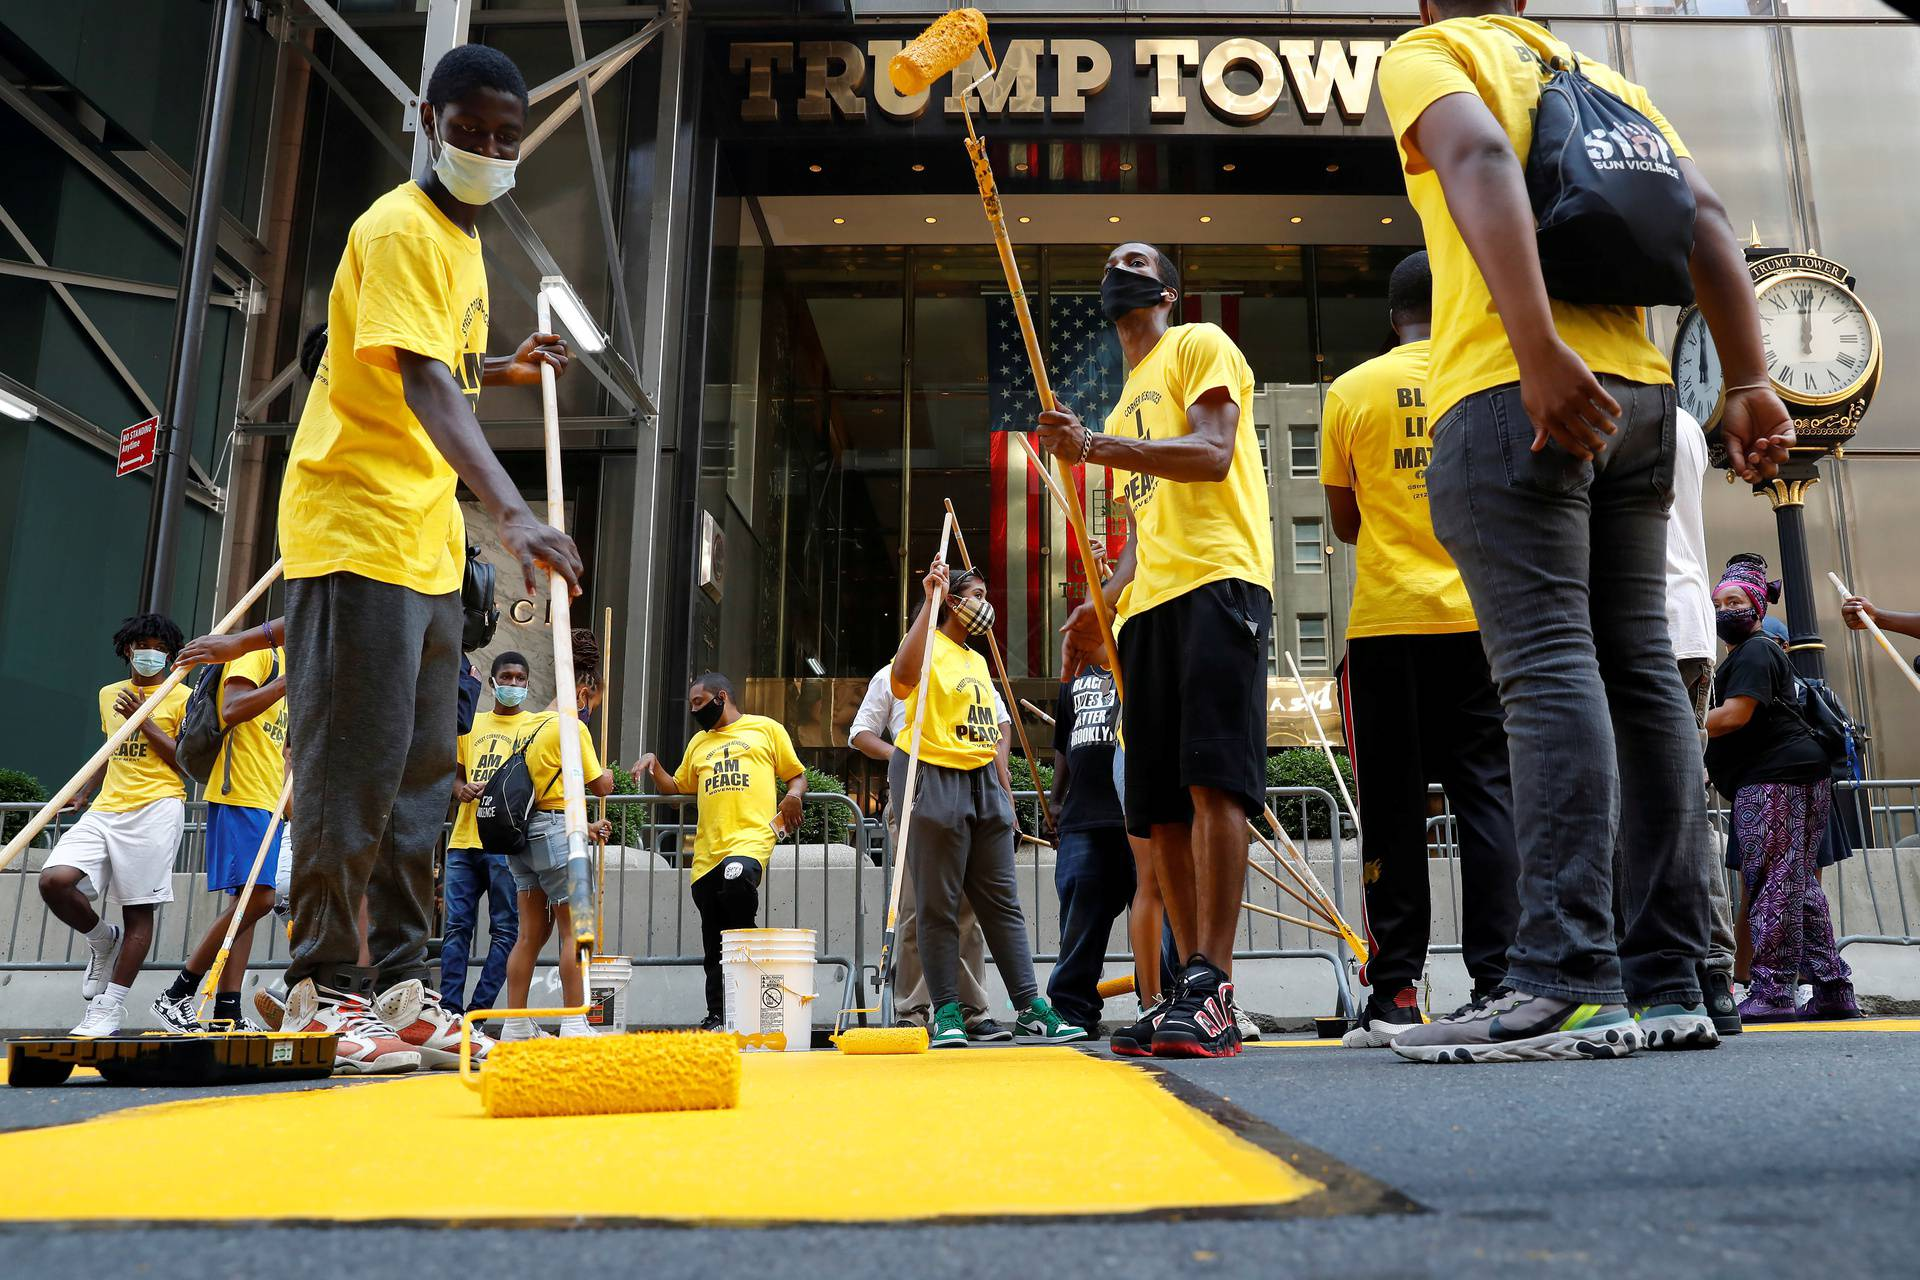 """People paint a """"Black Lives Matter"""" along 5th avenue outside Trump Tower in New York City"""